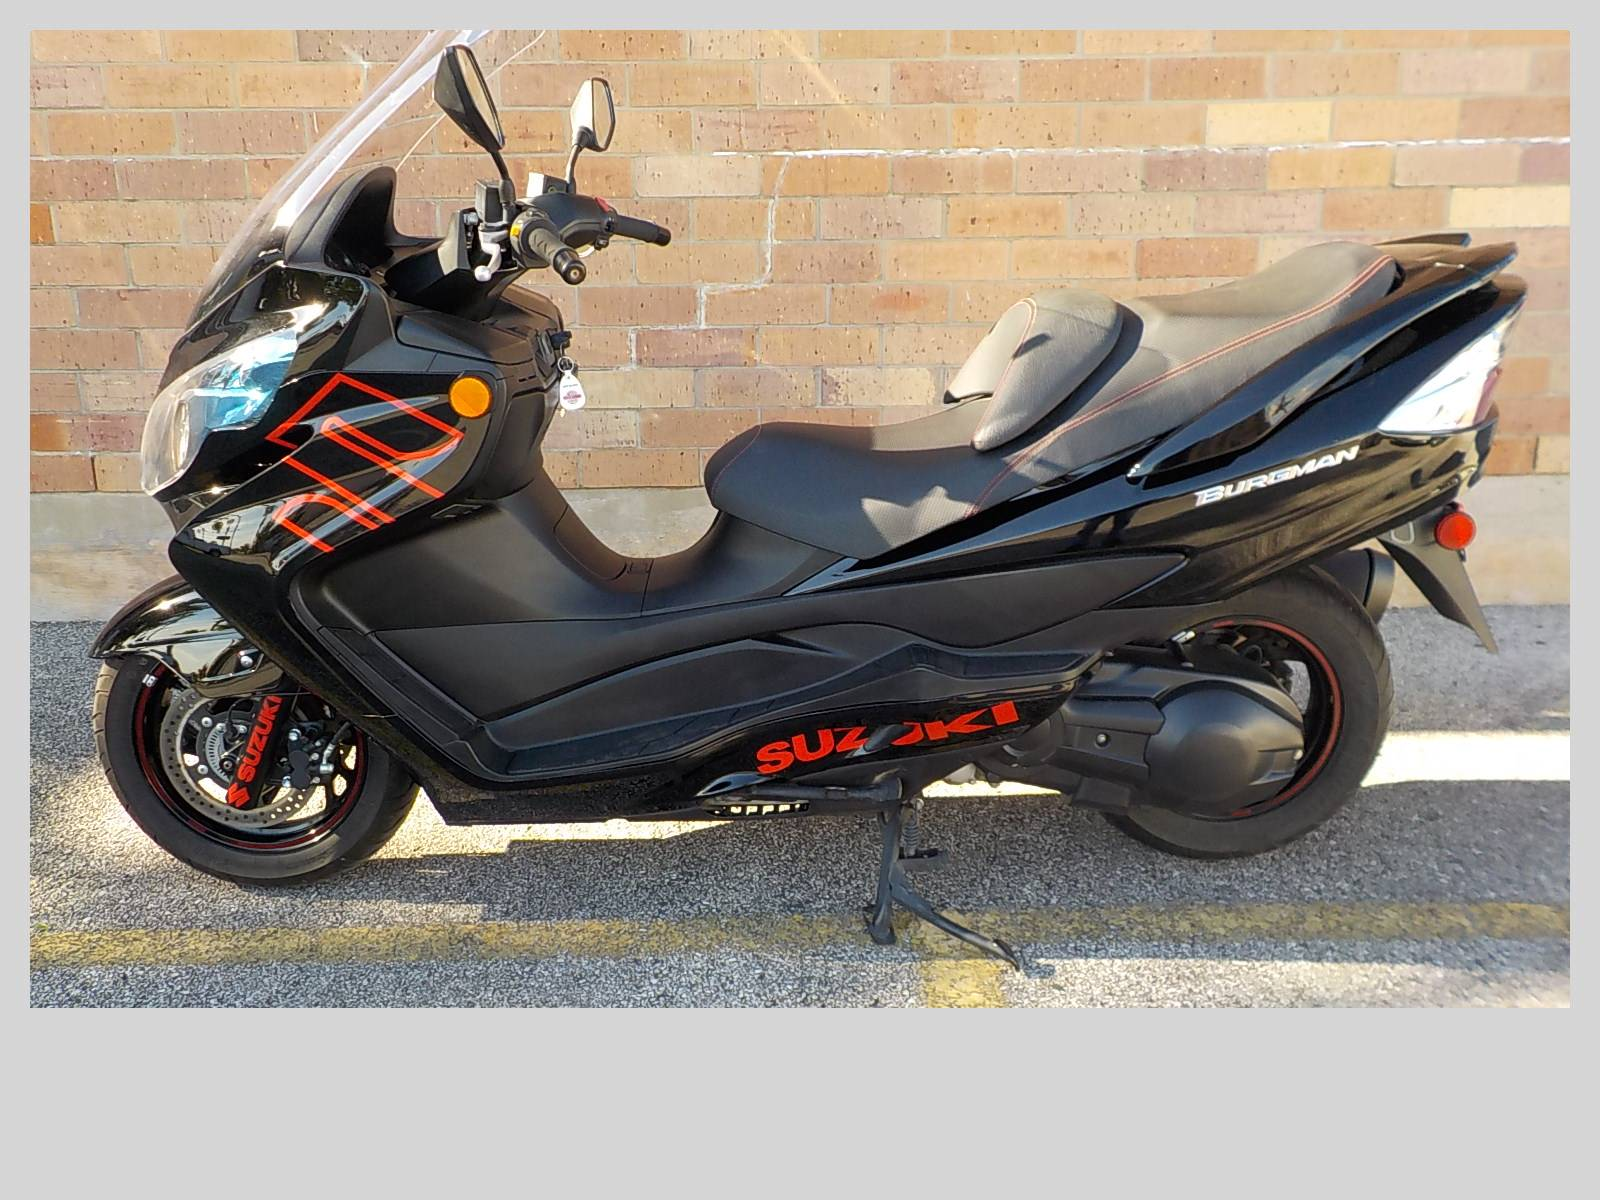 2014 Suzuki Burgman™ 400 ABS in San Antonio, Texas - Photo 2